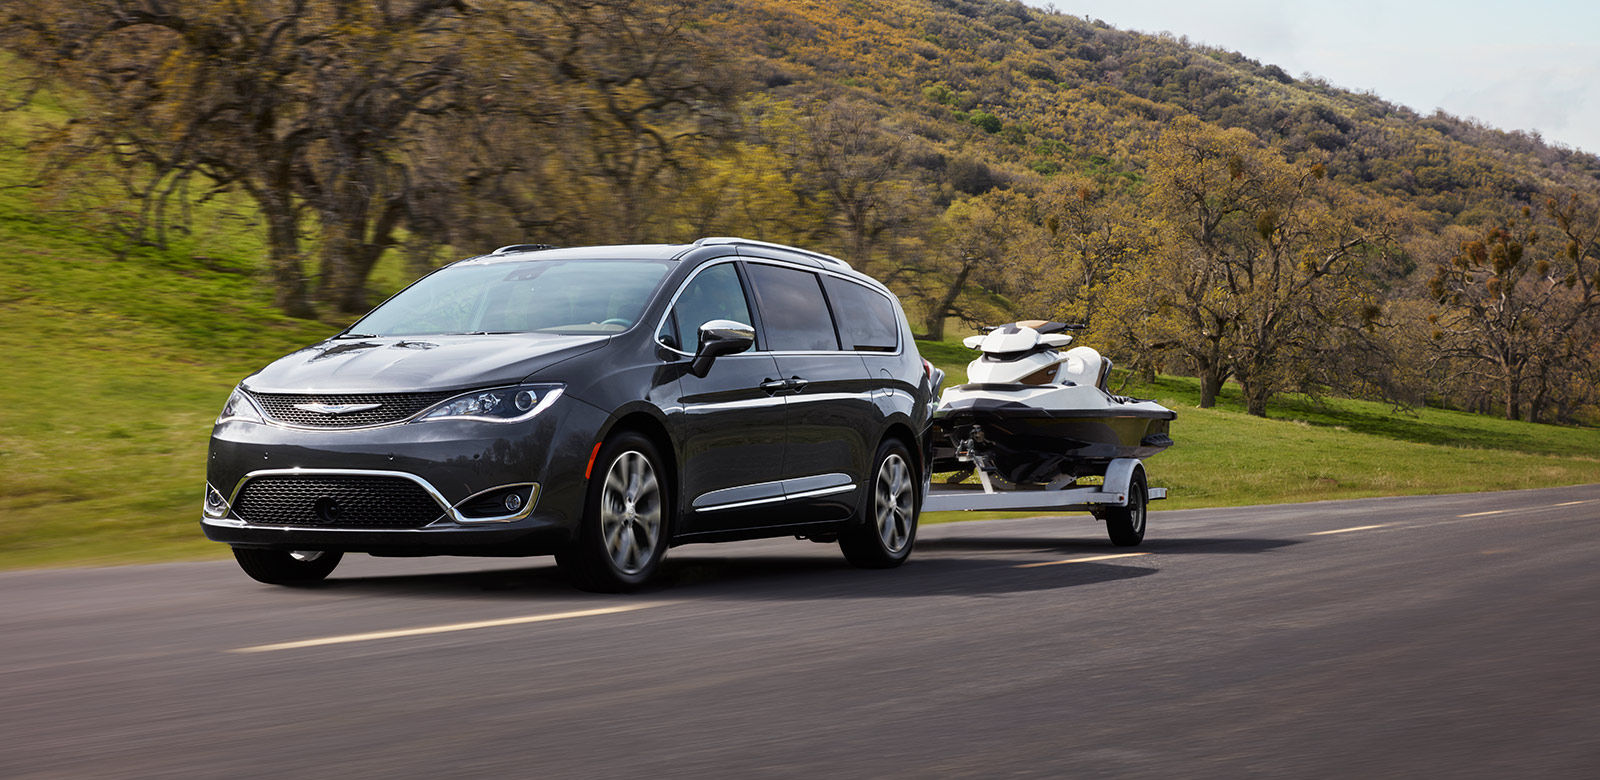 2017 Chrysler Pacifica tow